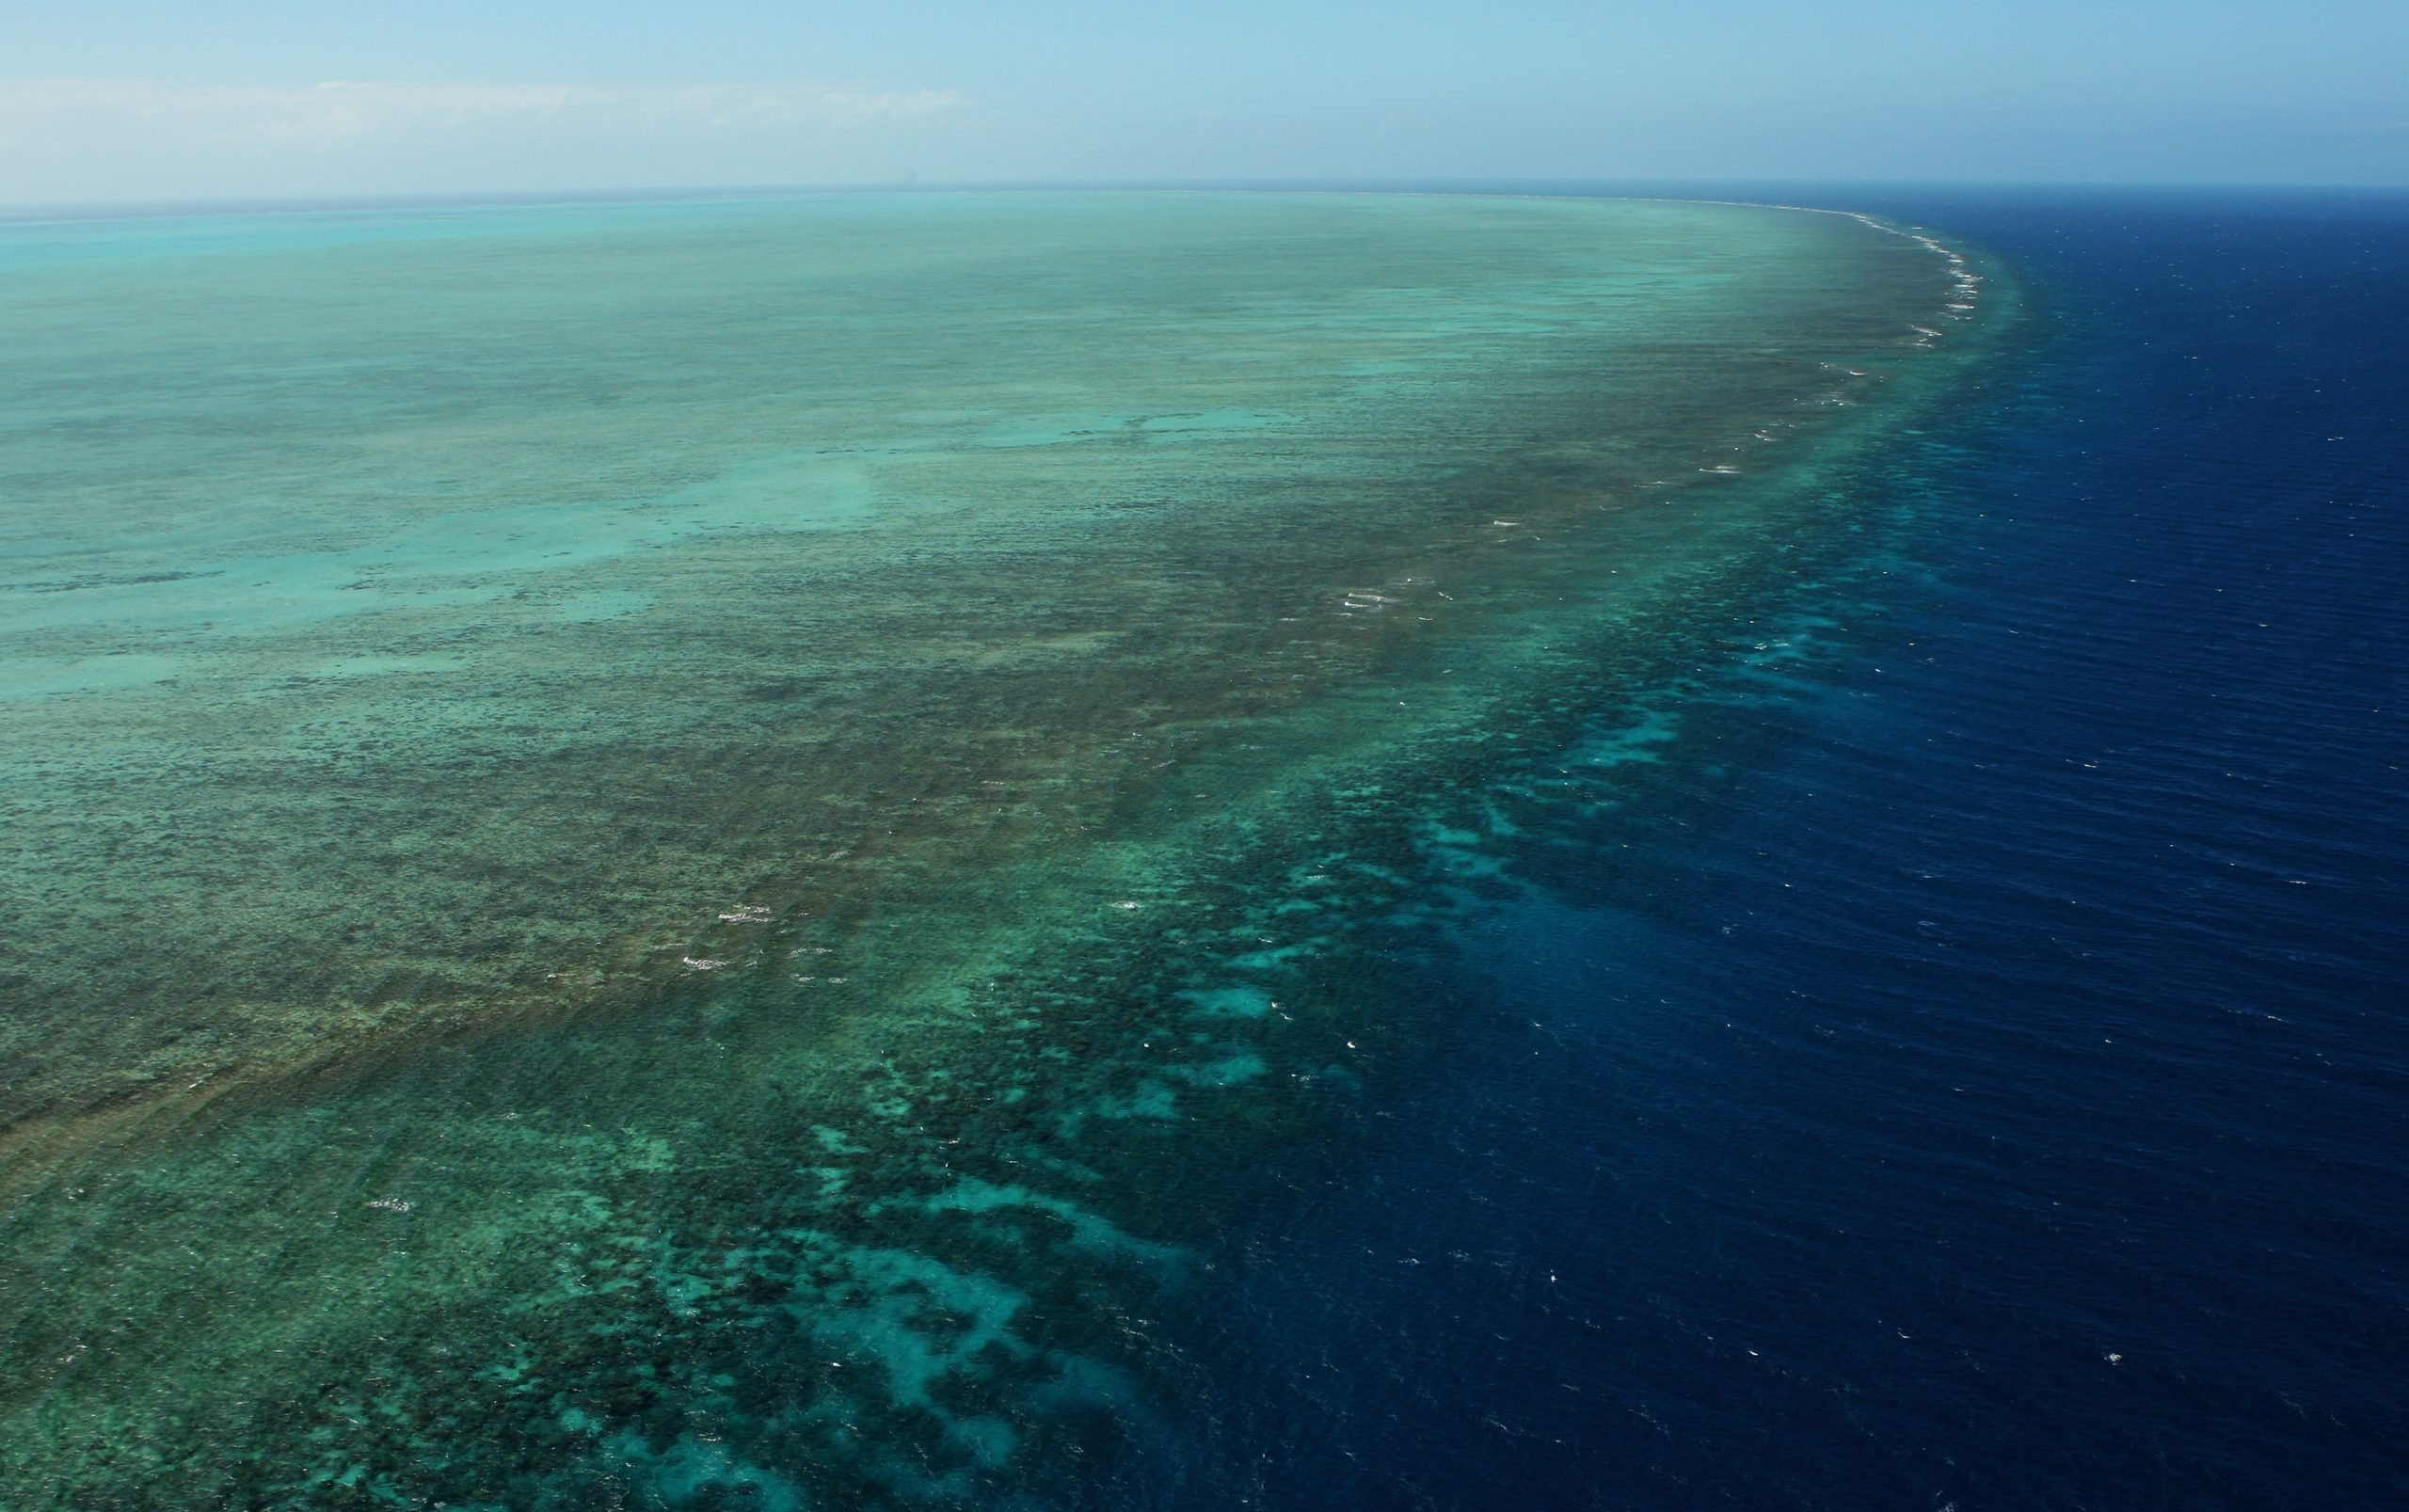 Aerial view of the Great Barrier Reef showing bleaching